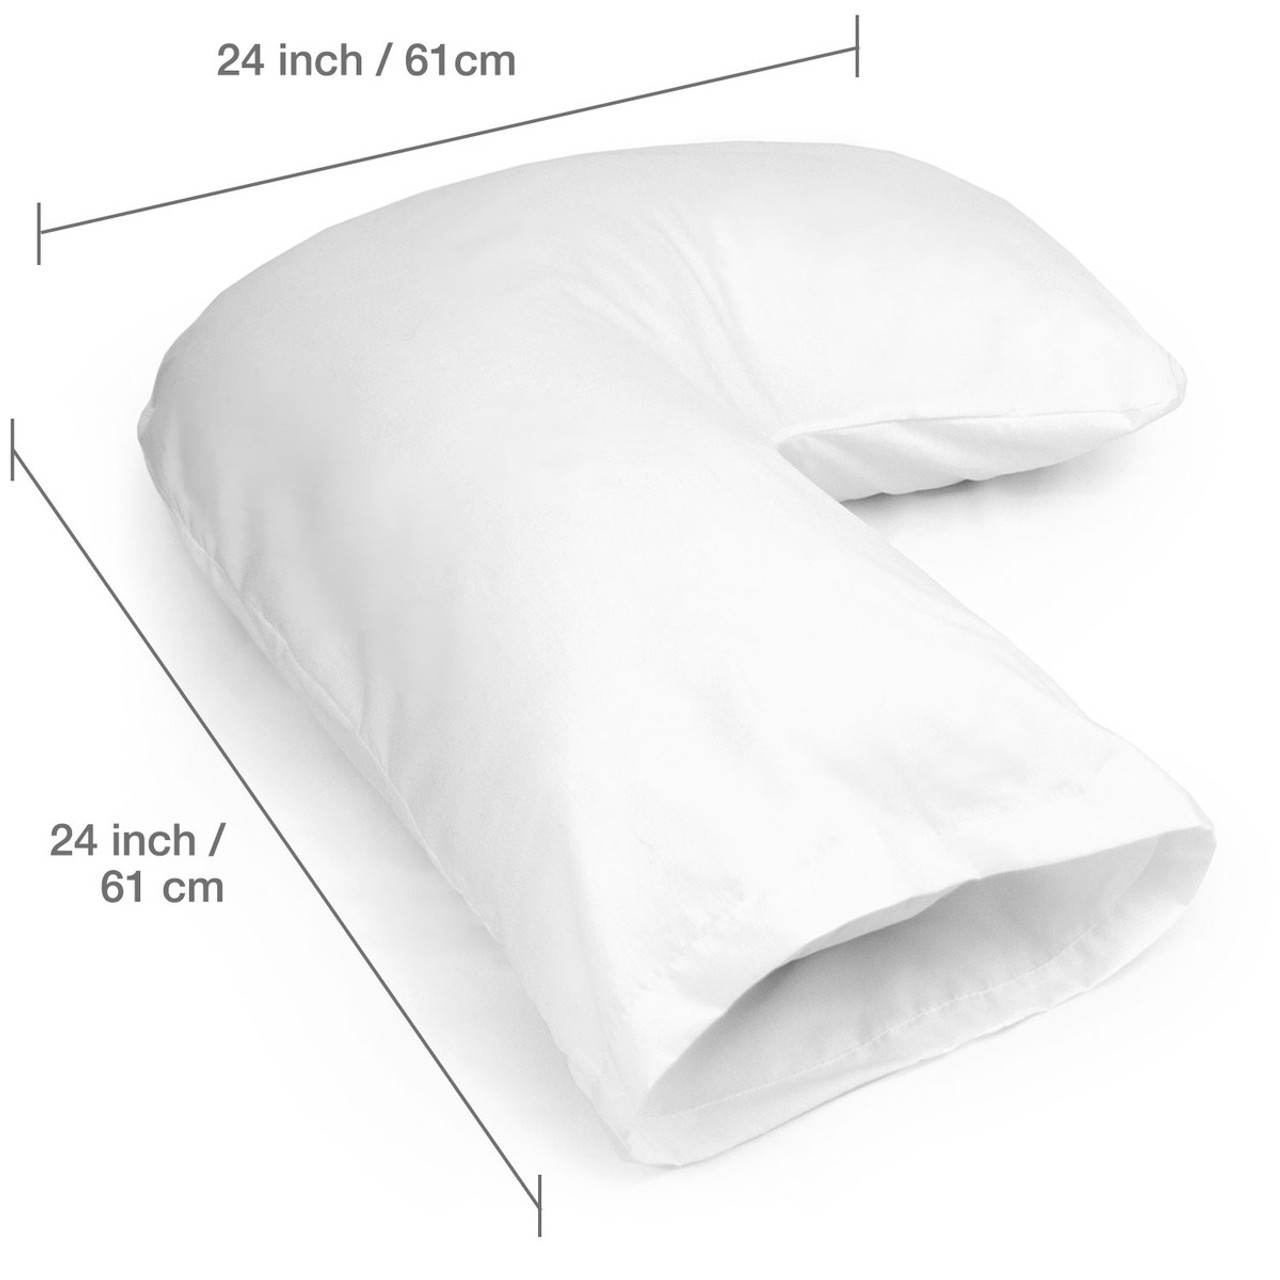 DMI® Hugg-A-Pillow Hypoallergenic Bed Pillow, by Healthsmart